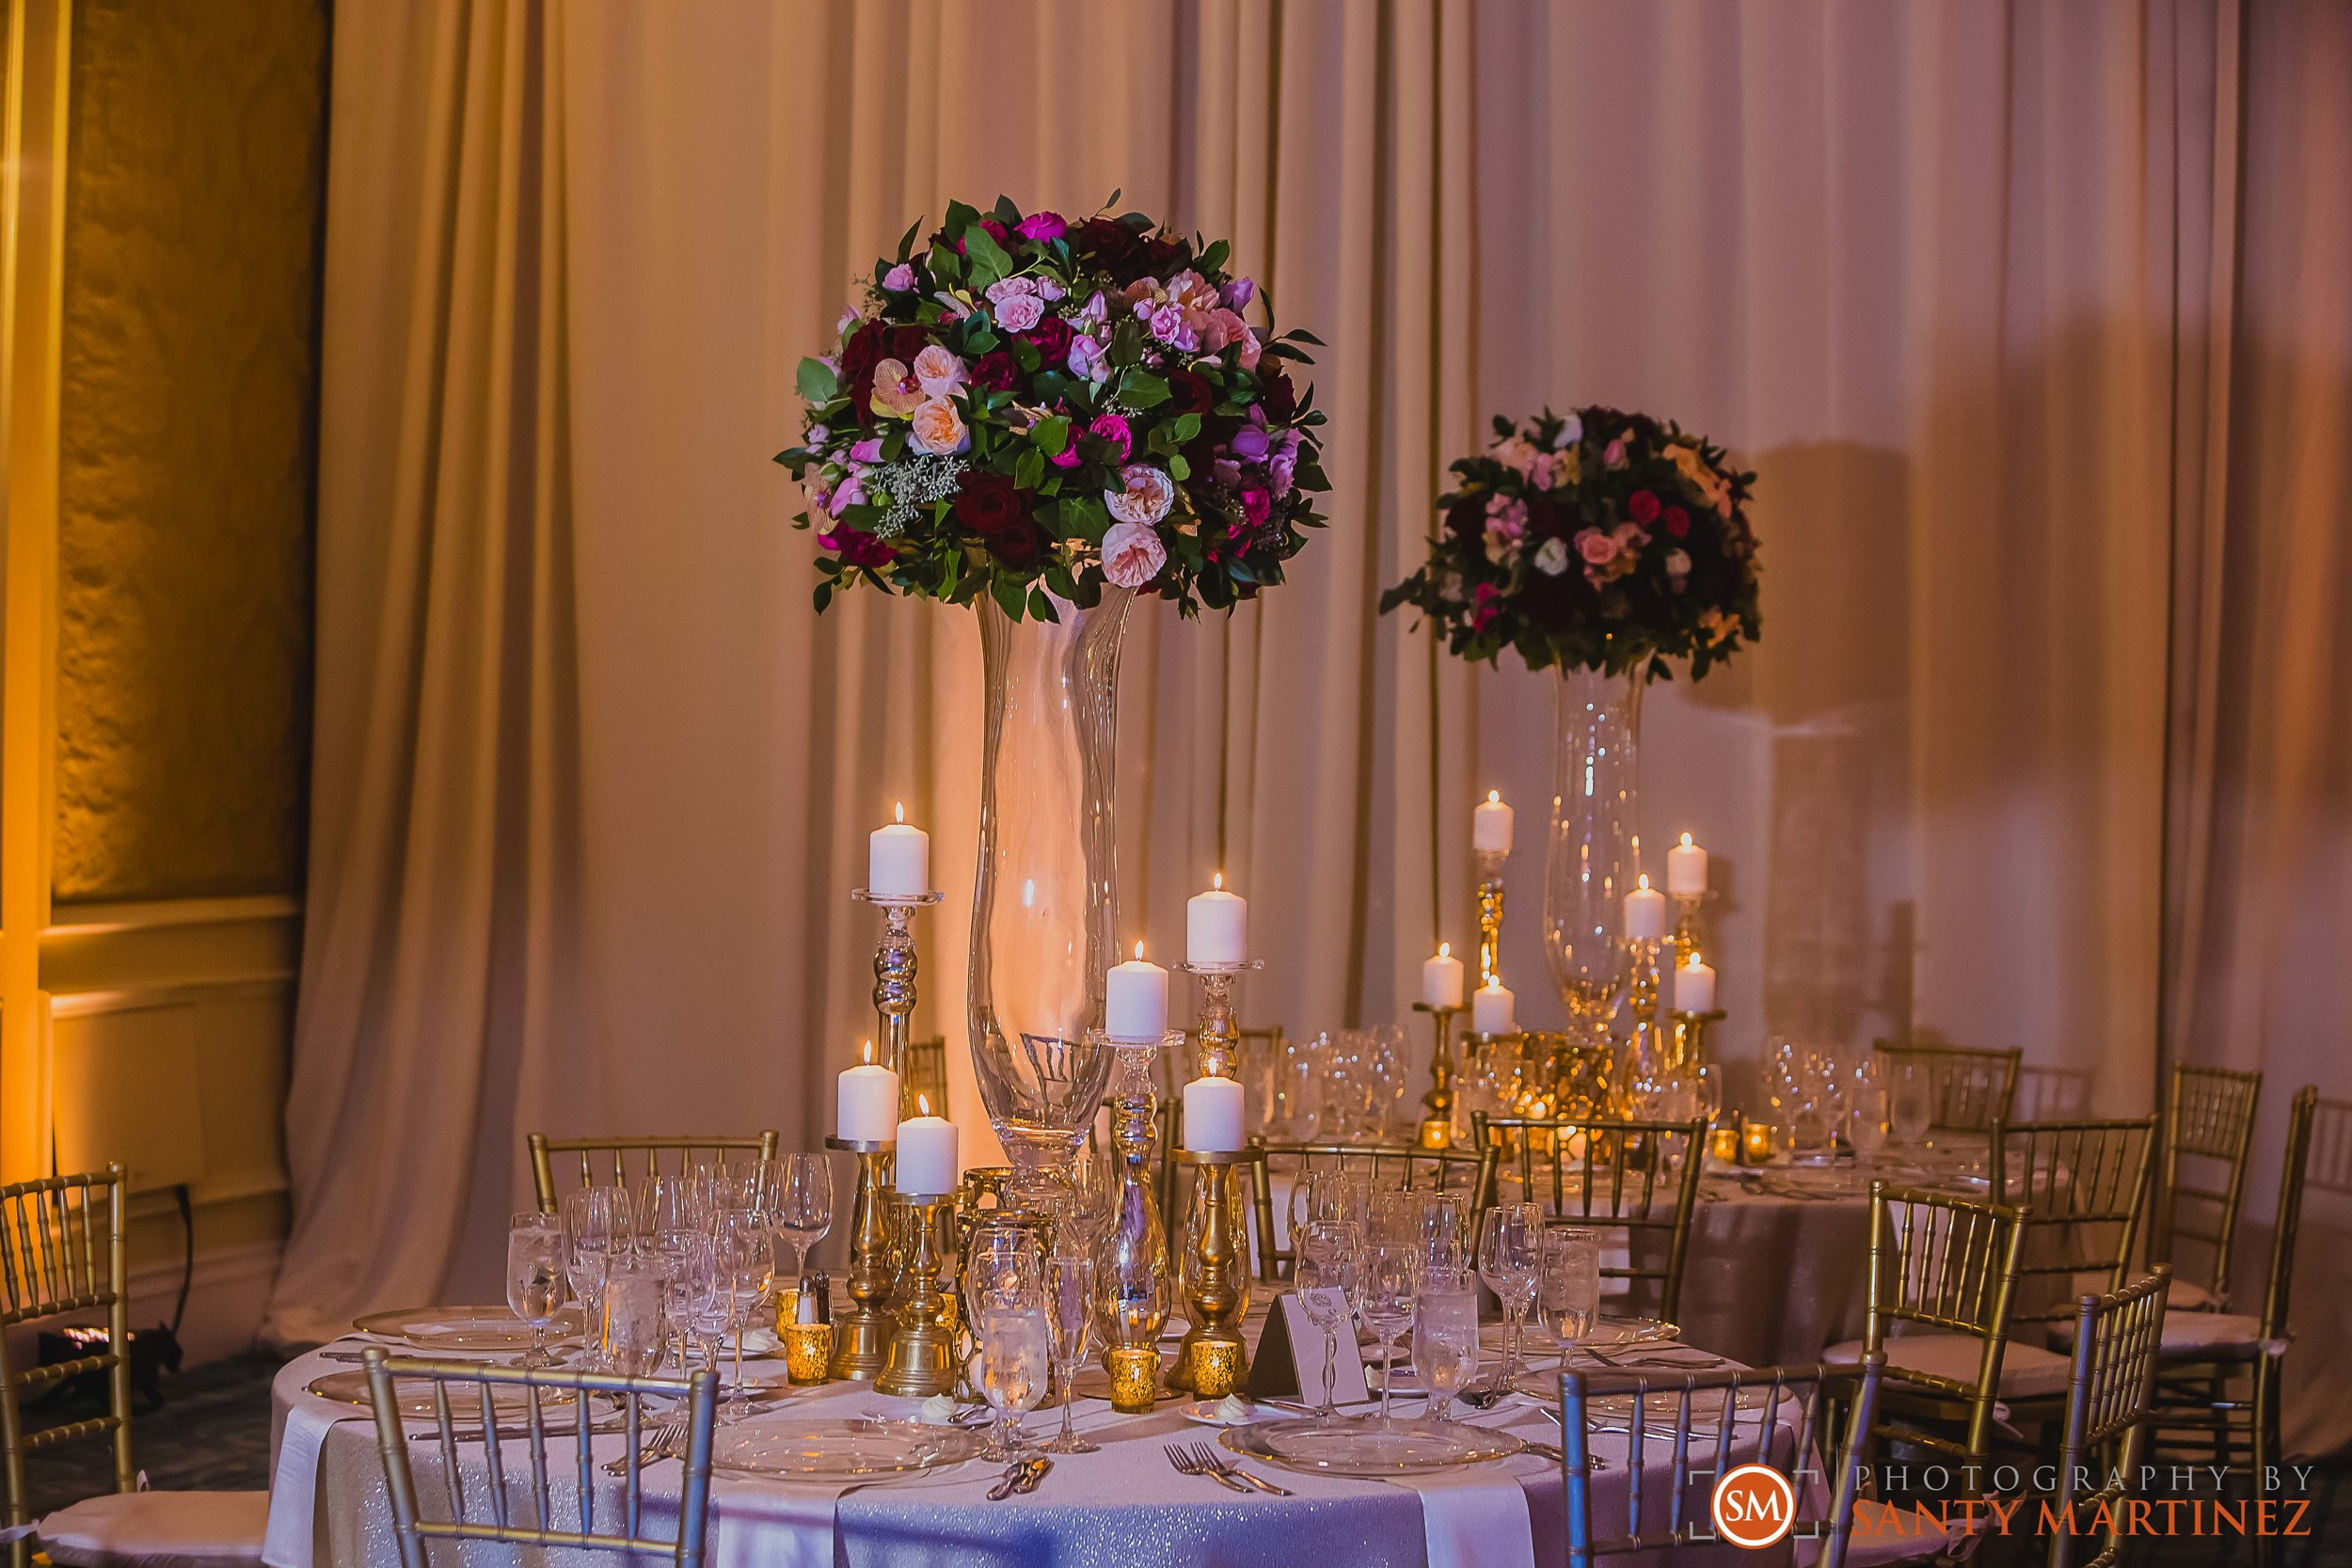 Wedding Ritz Carlton Coconut Grove - Santy Martinez-24.jpg